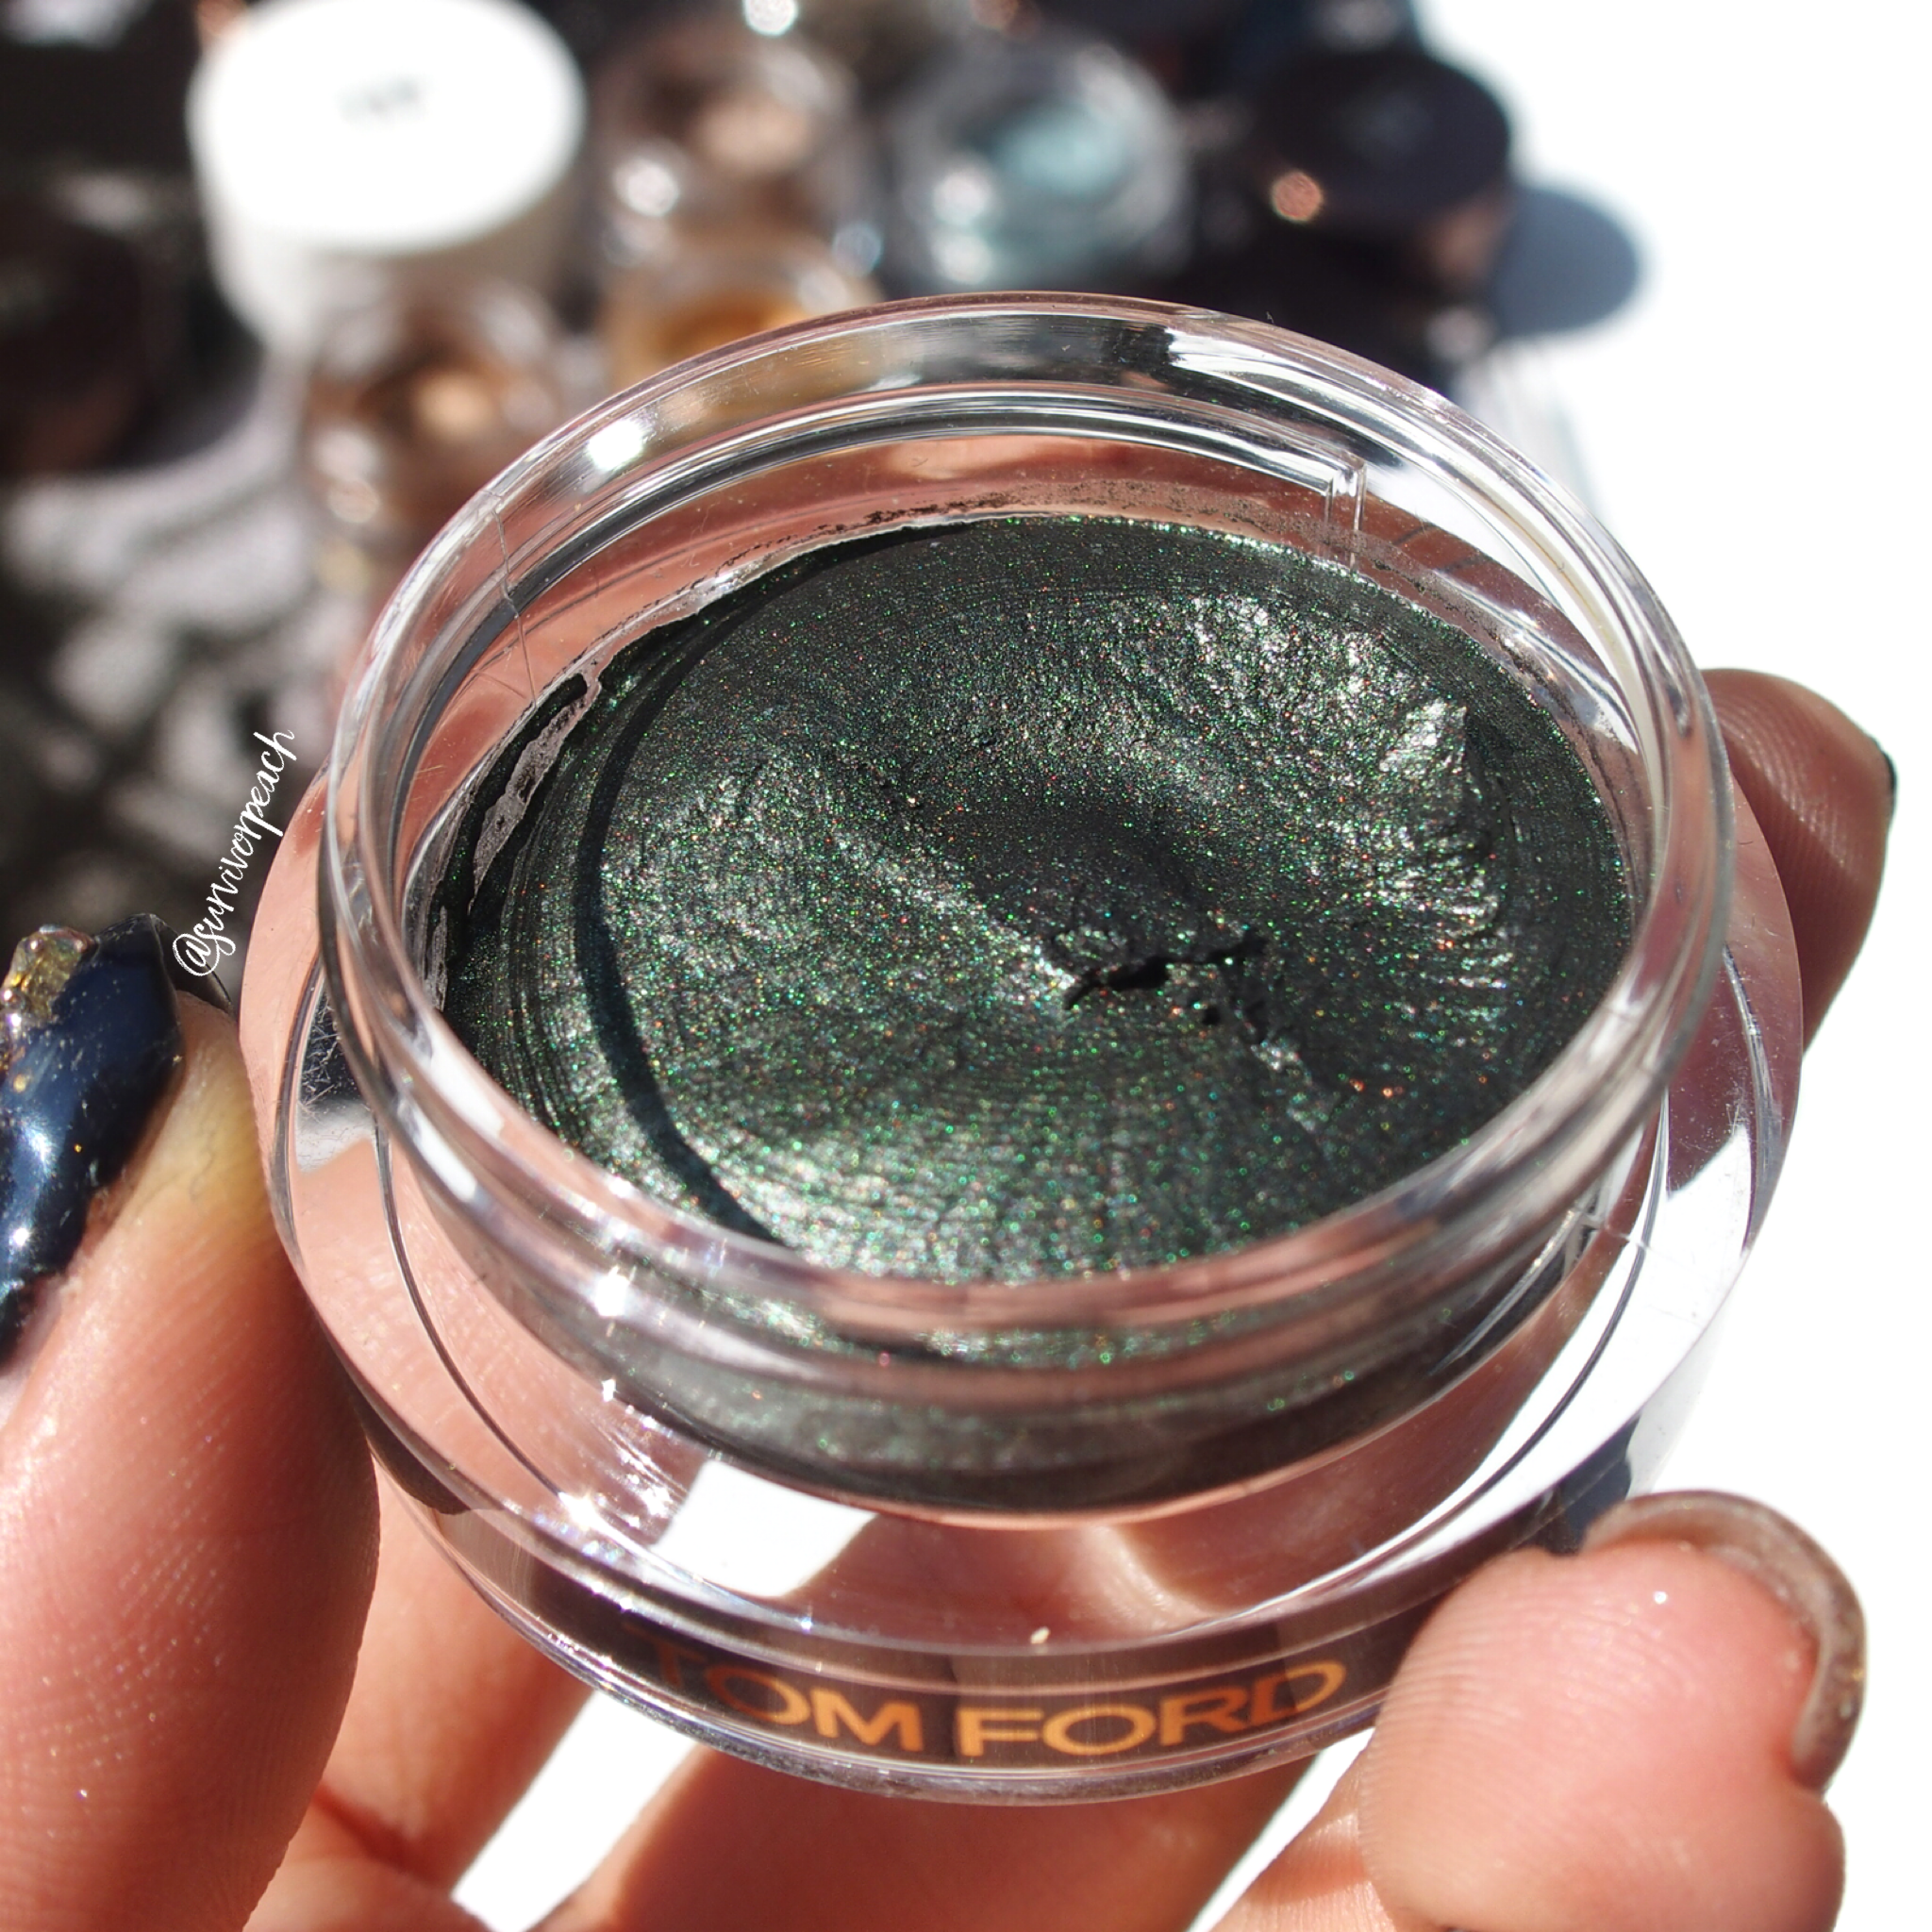 Tom Ford Creme Color for Eyes - Emerald Isles